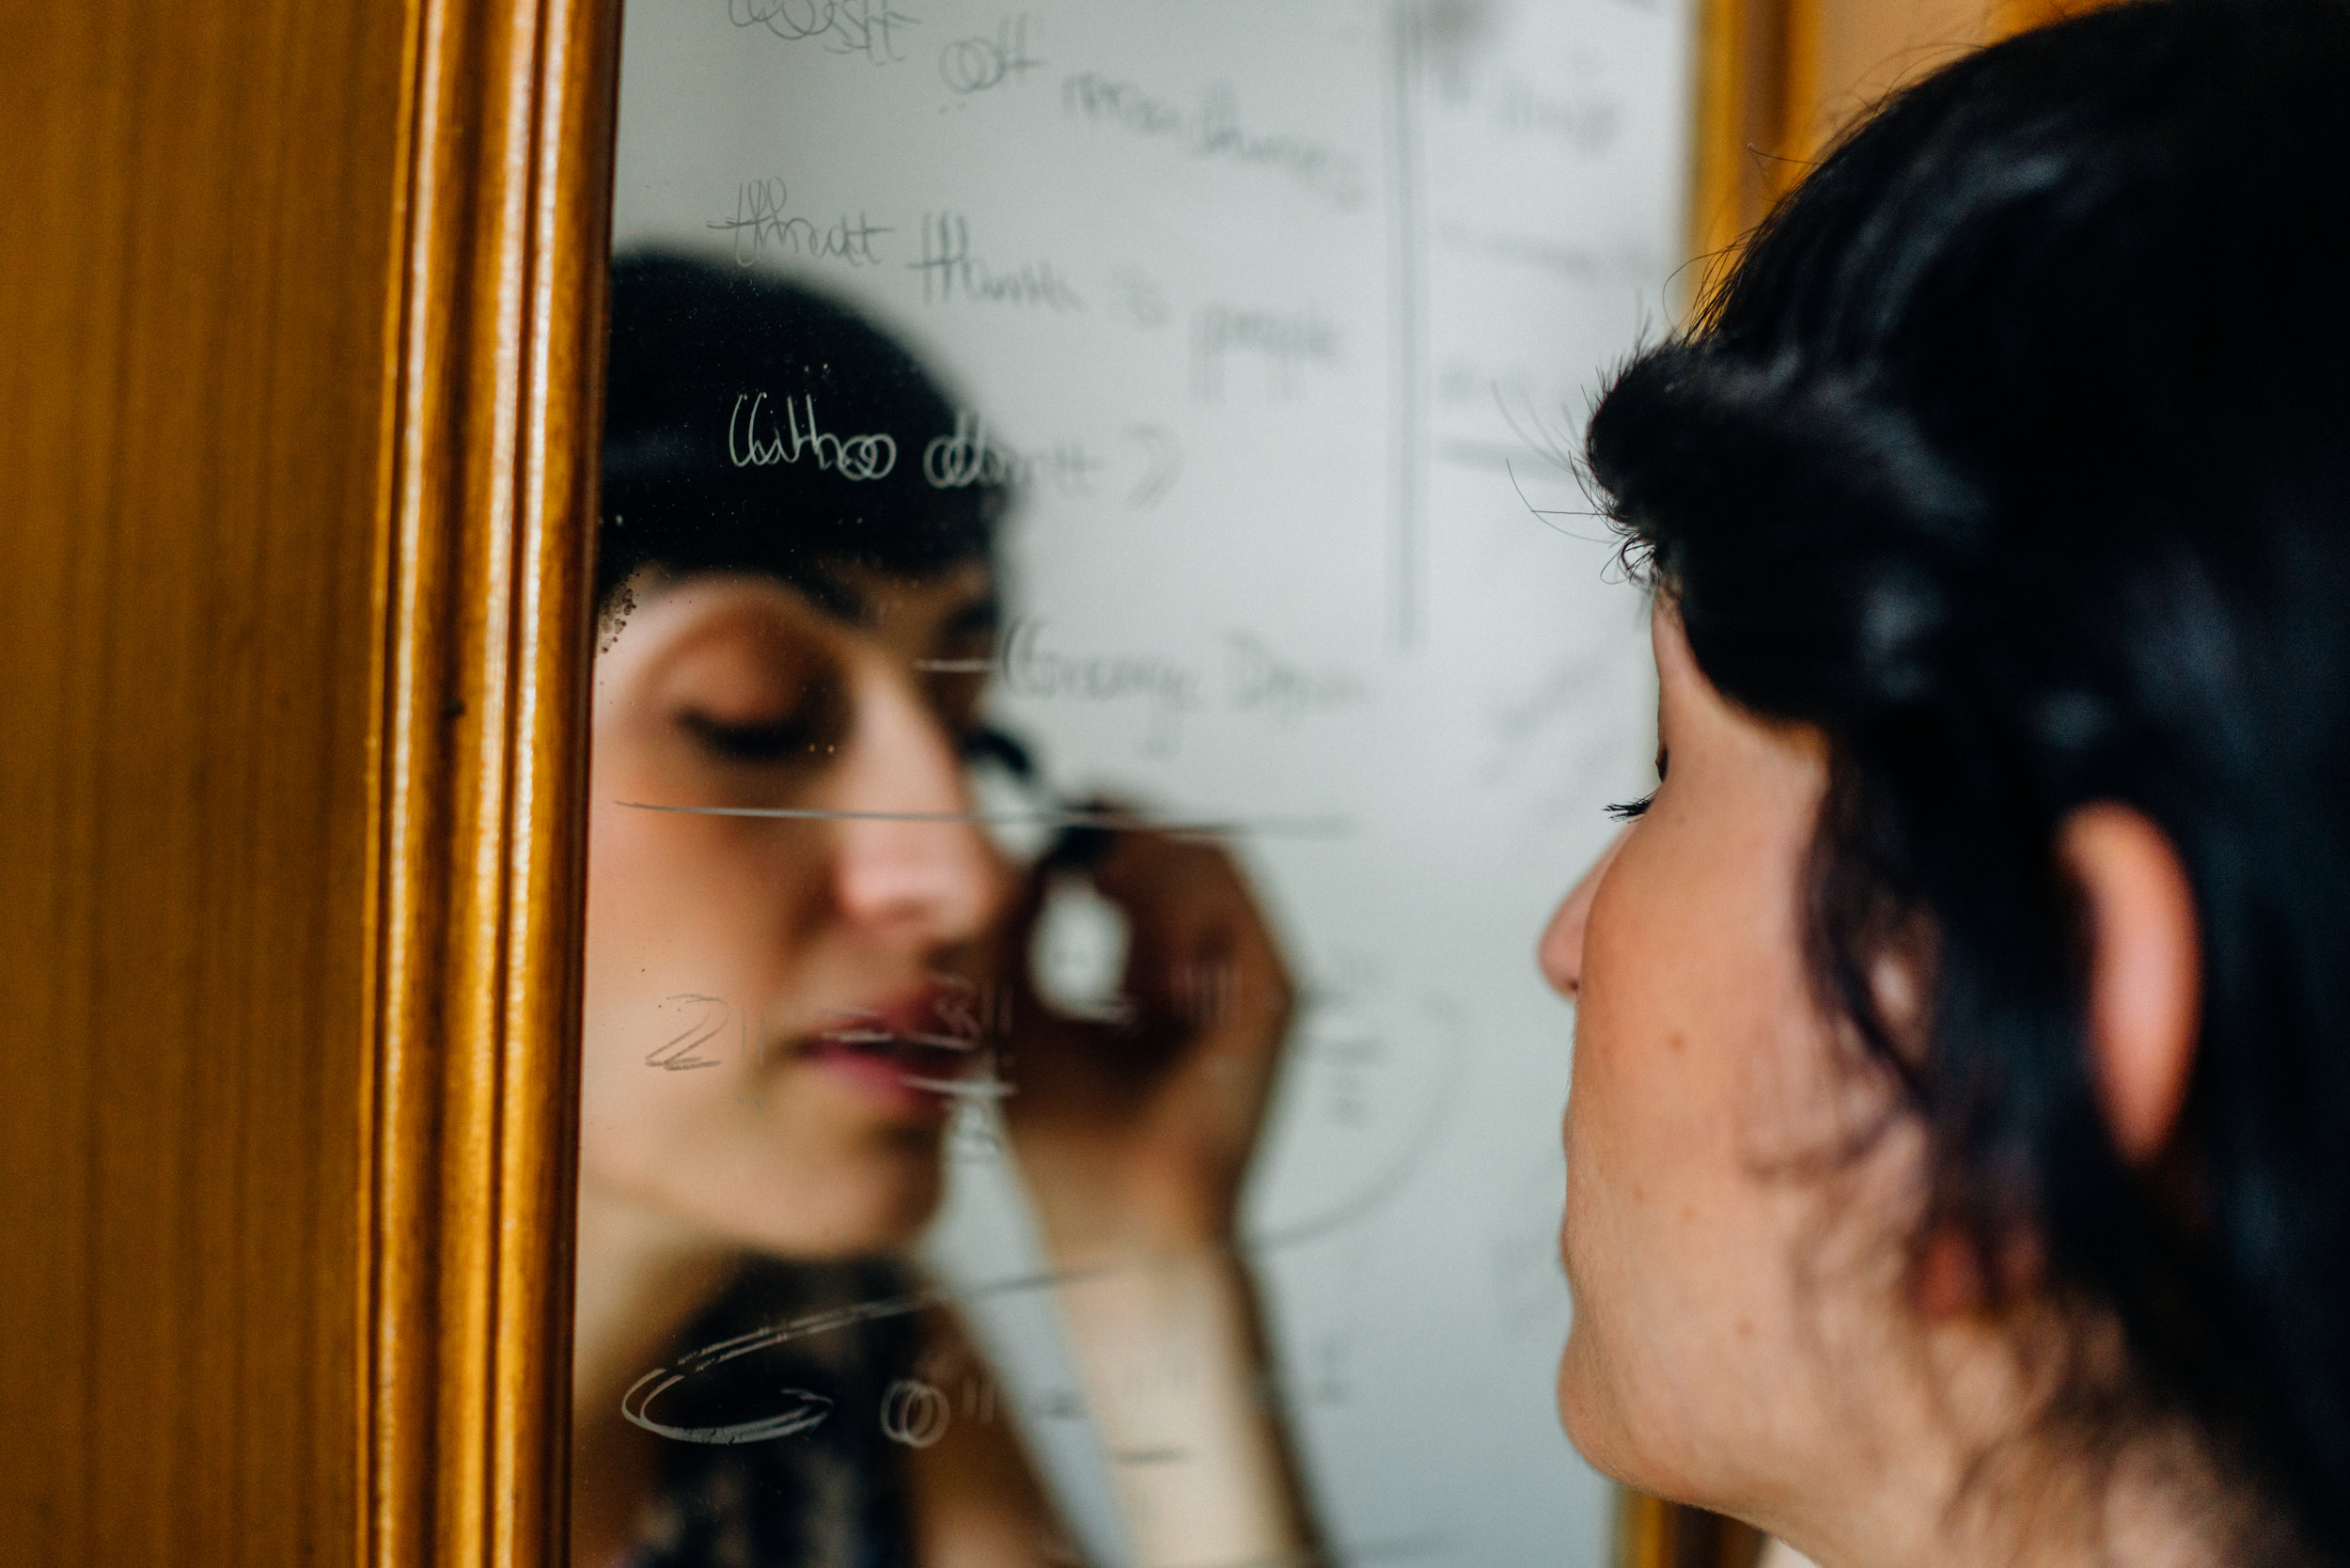 Behind the mirror, words. Behind the mirror, enigma. Beyond the mirror, World.